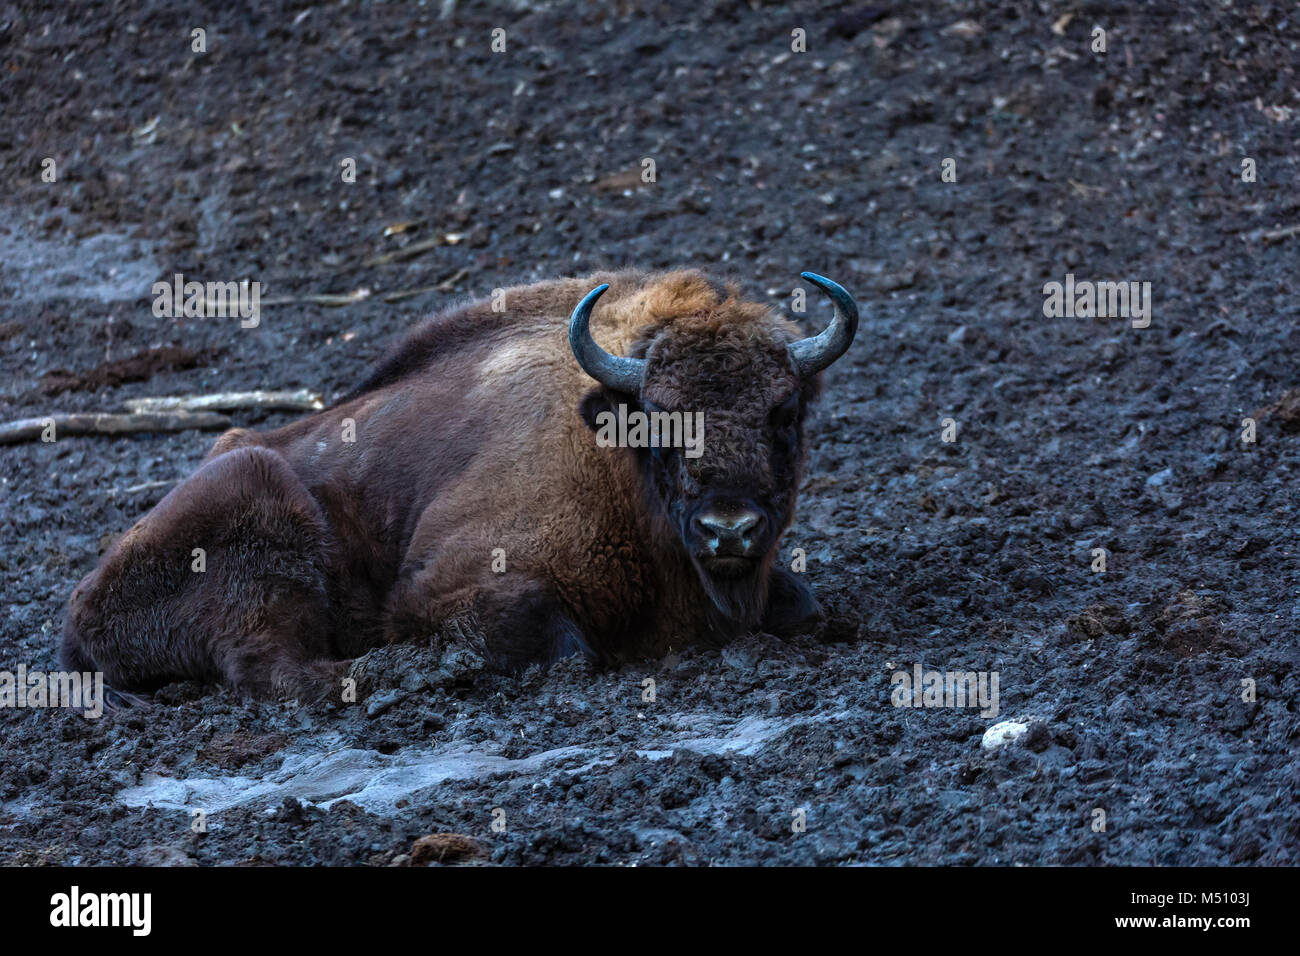 zimbru seated in a mud in a natural reserve - Stock Image